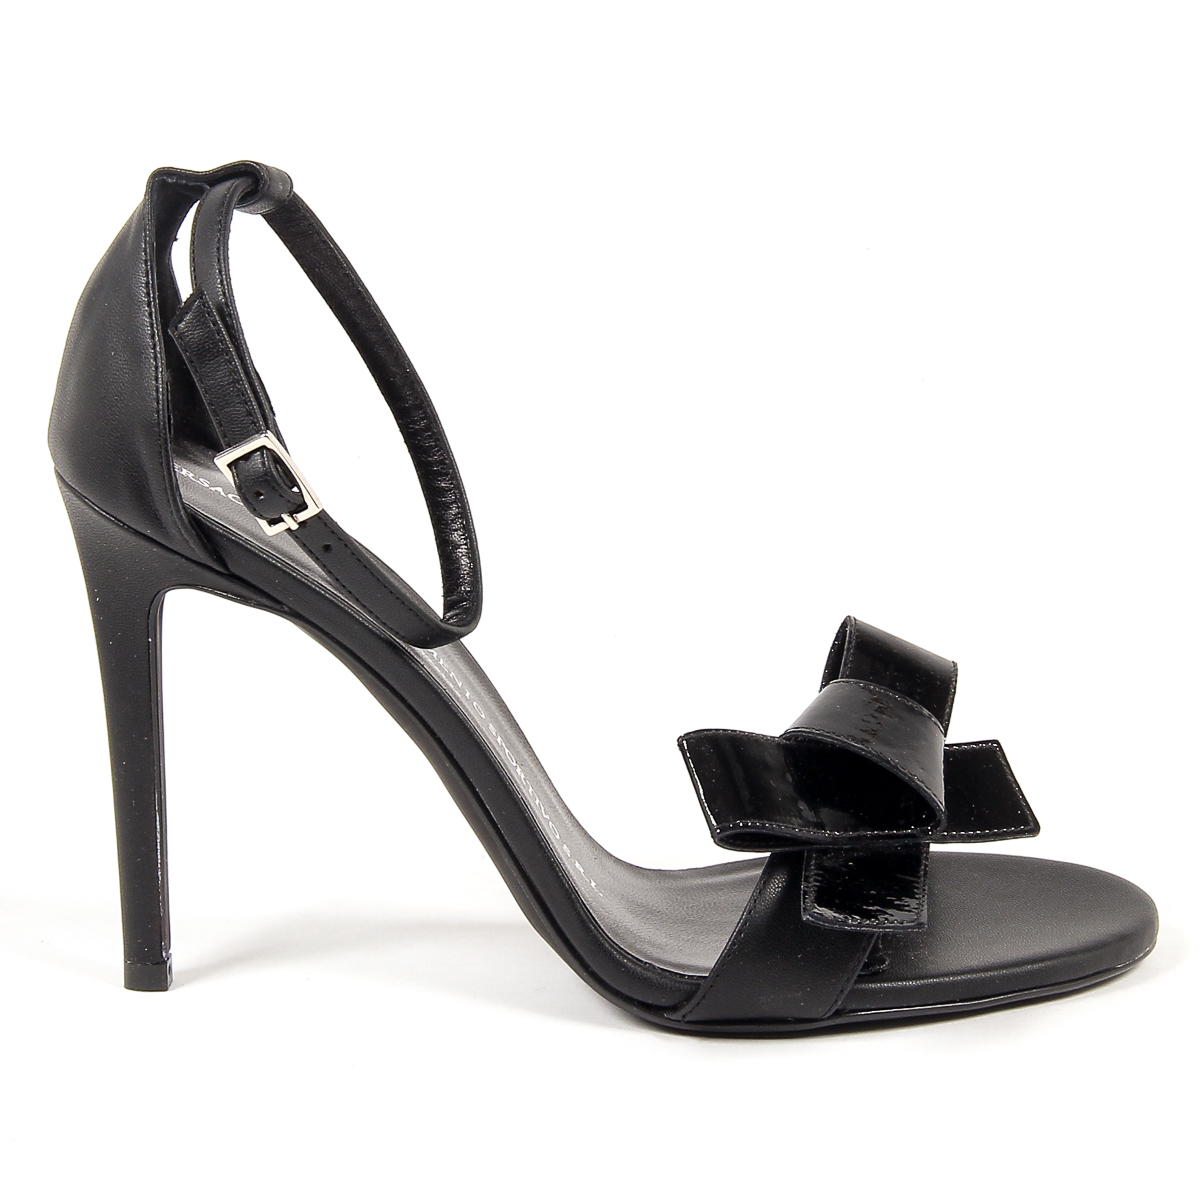 Primary image for V 1969 Italia Womens Ankle Strap Sandal Black BEATRIZ